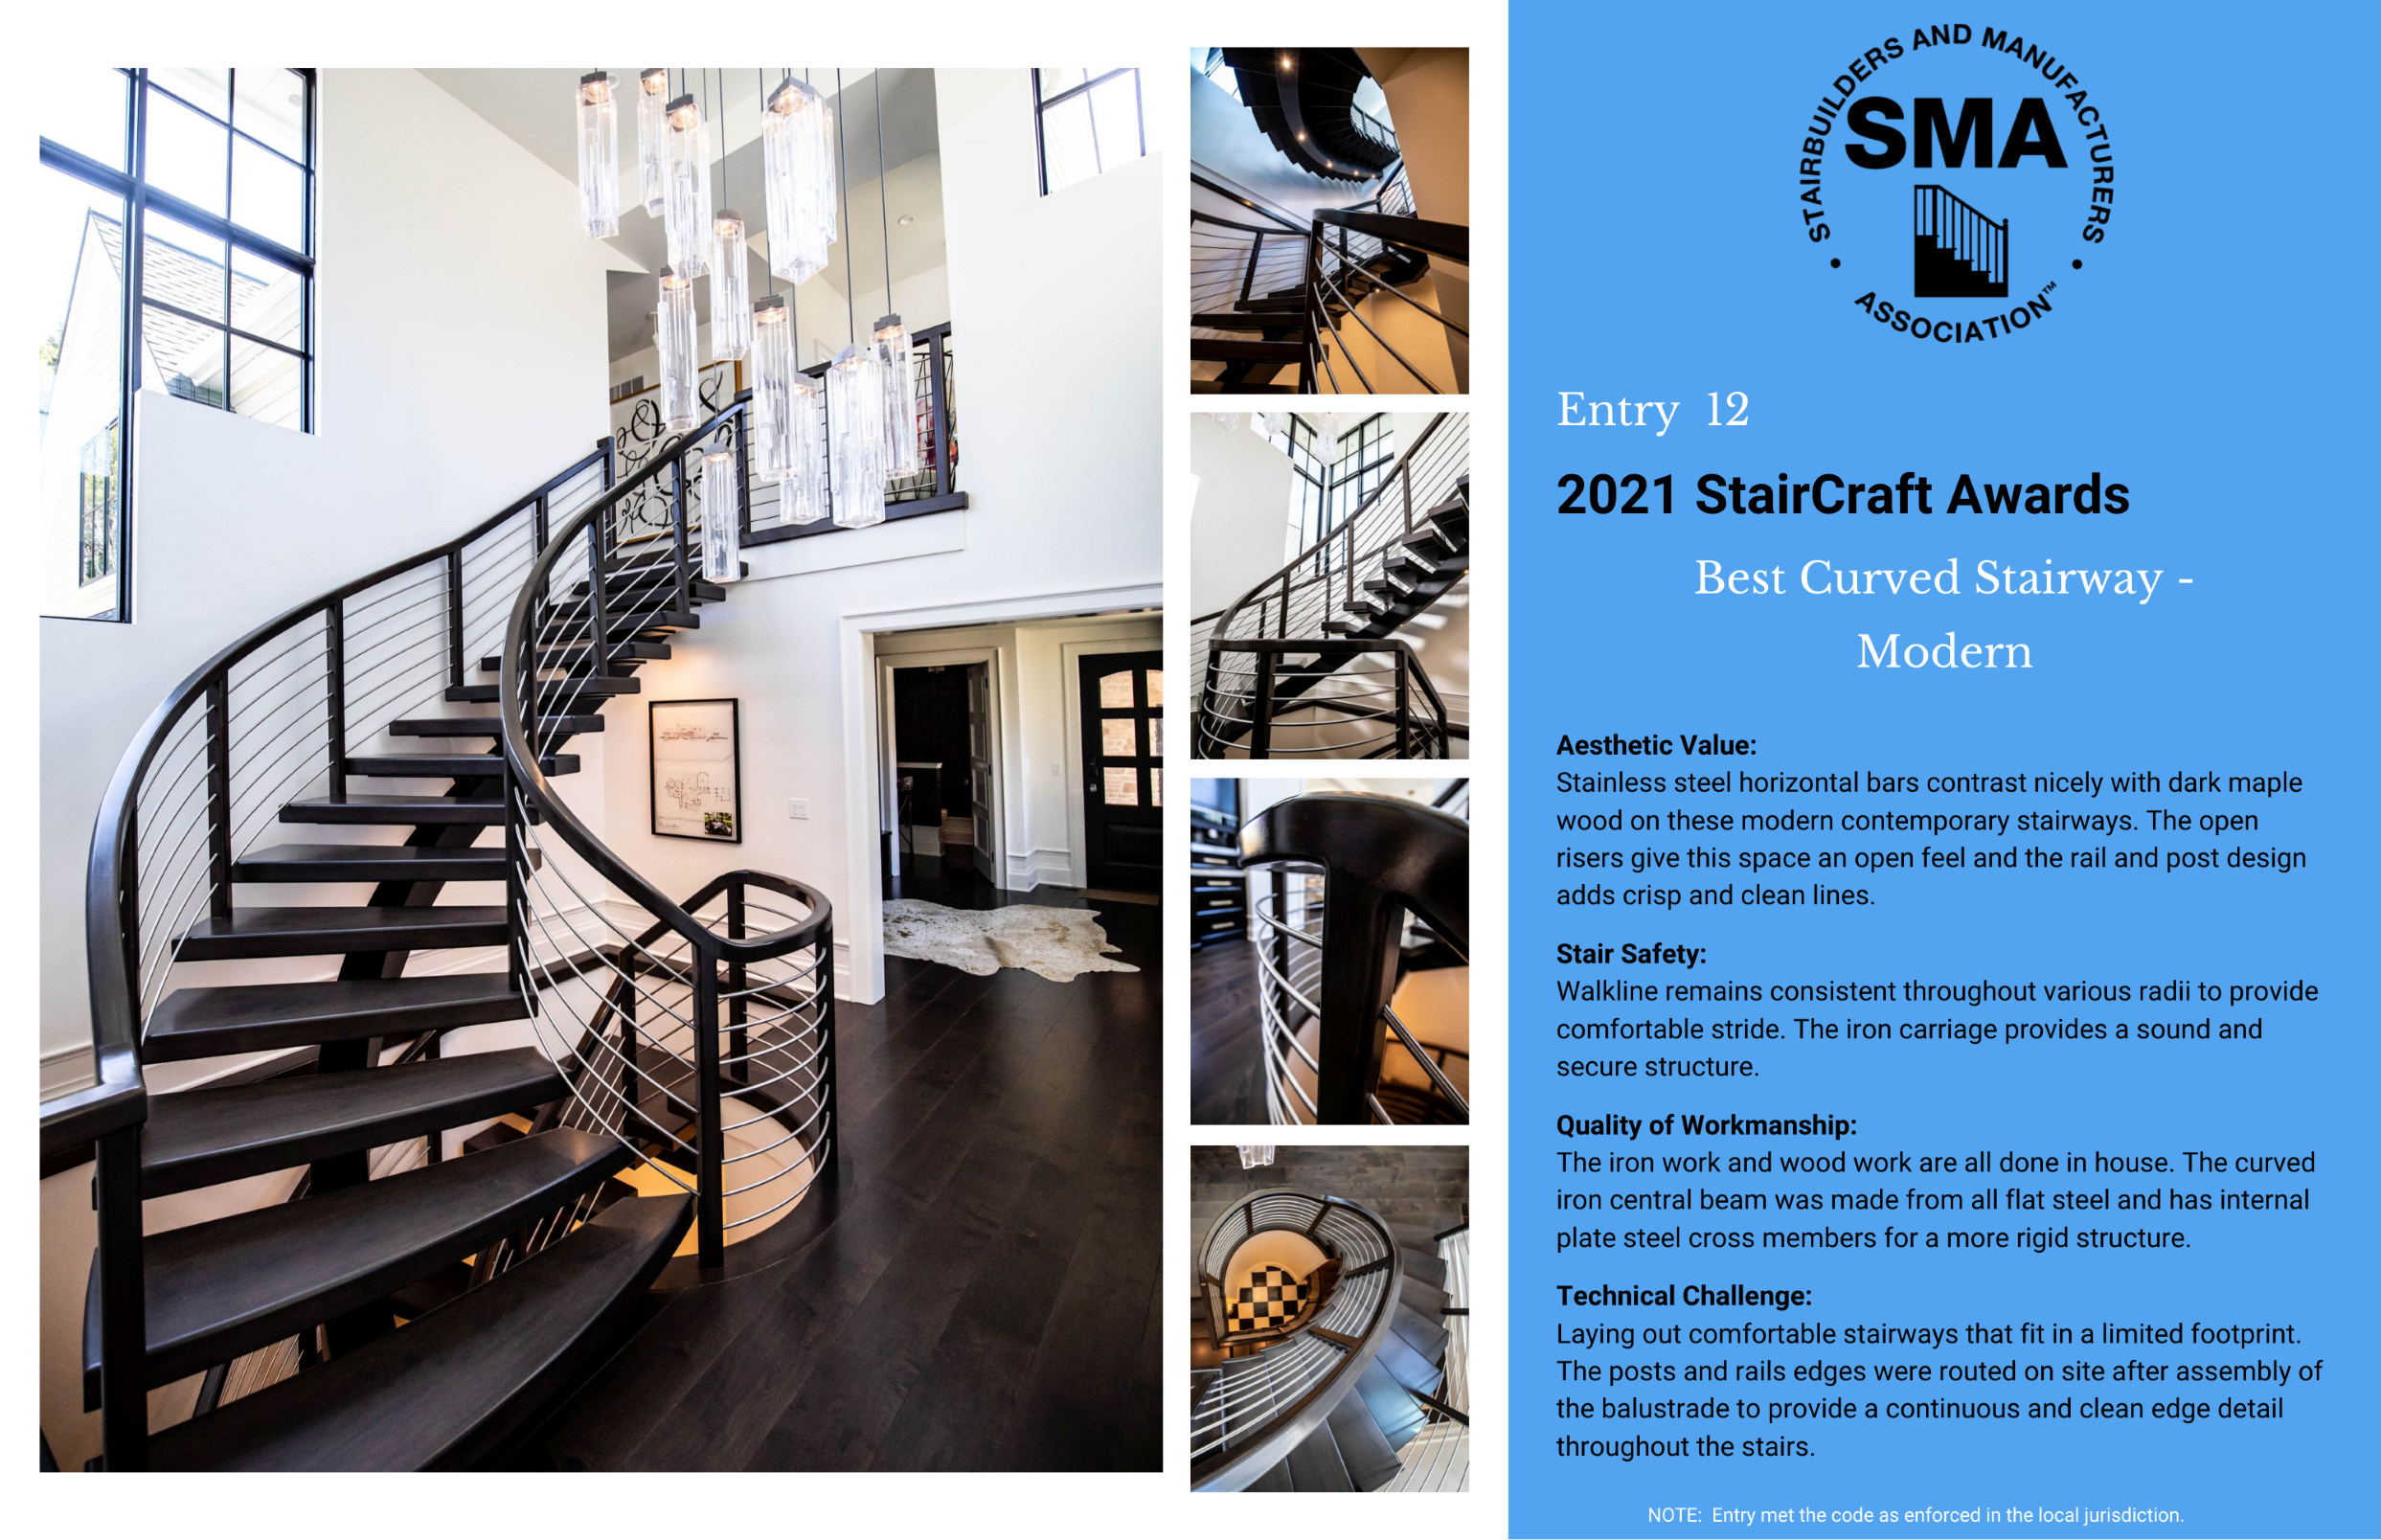 2021 StairCraft Awards Entry 12